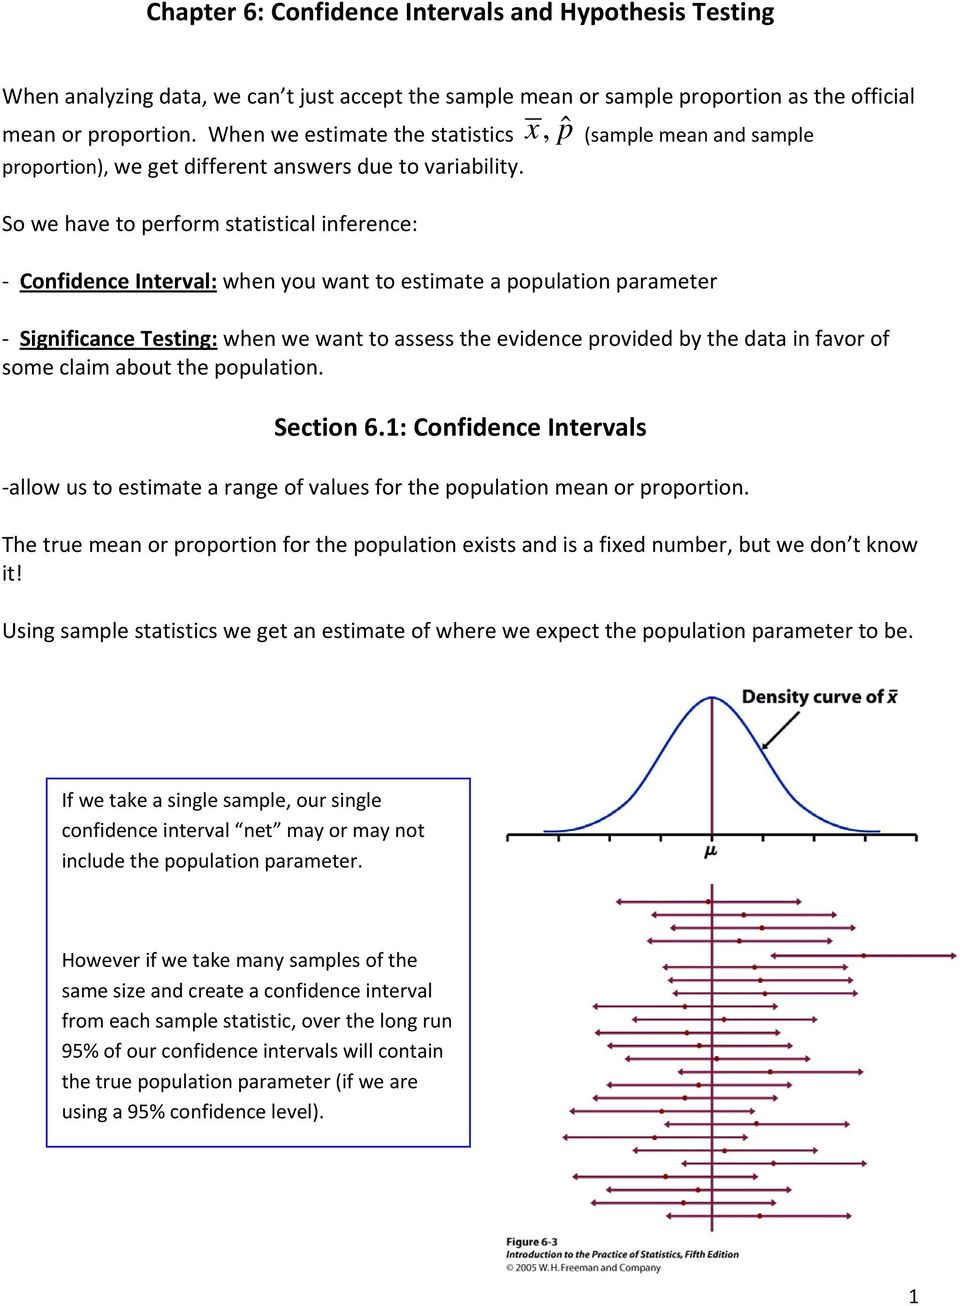 So we have to perform statistical inference: Confidence Interval: when you want to estimate a population parameter Significance Testing: when we want to assess the evidence provided by the data in